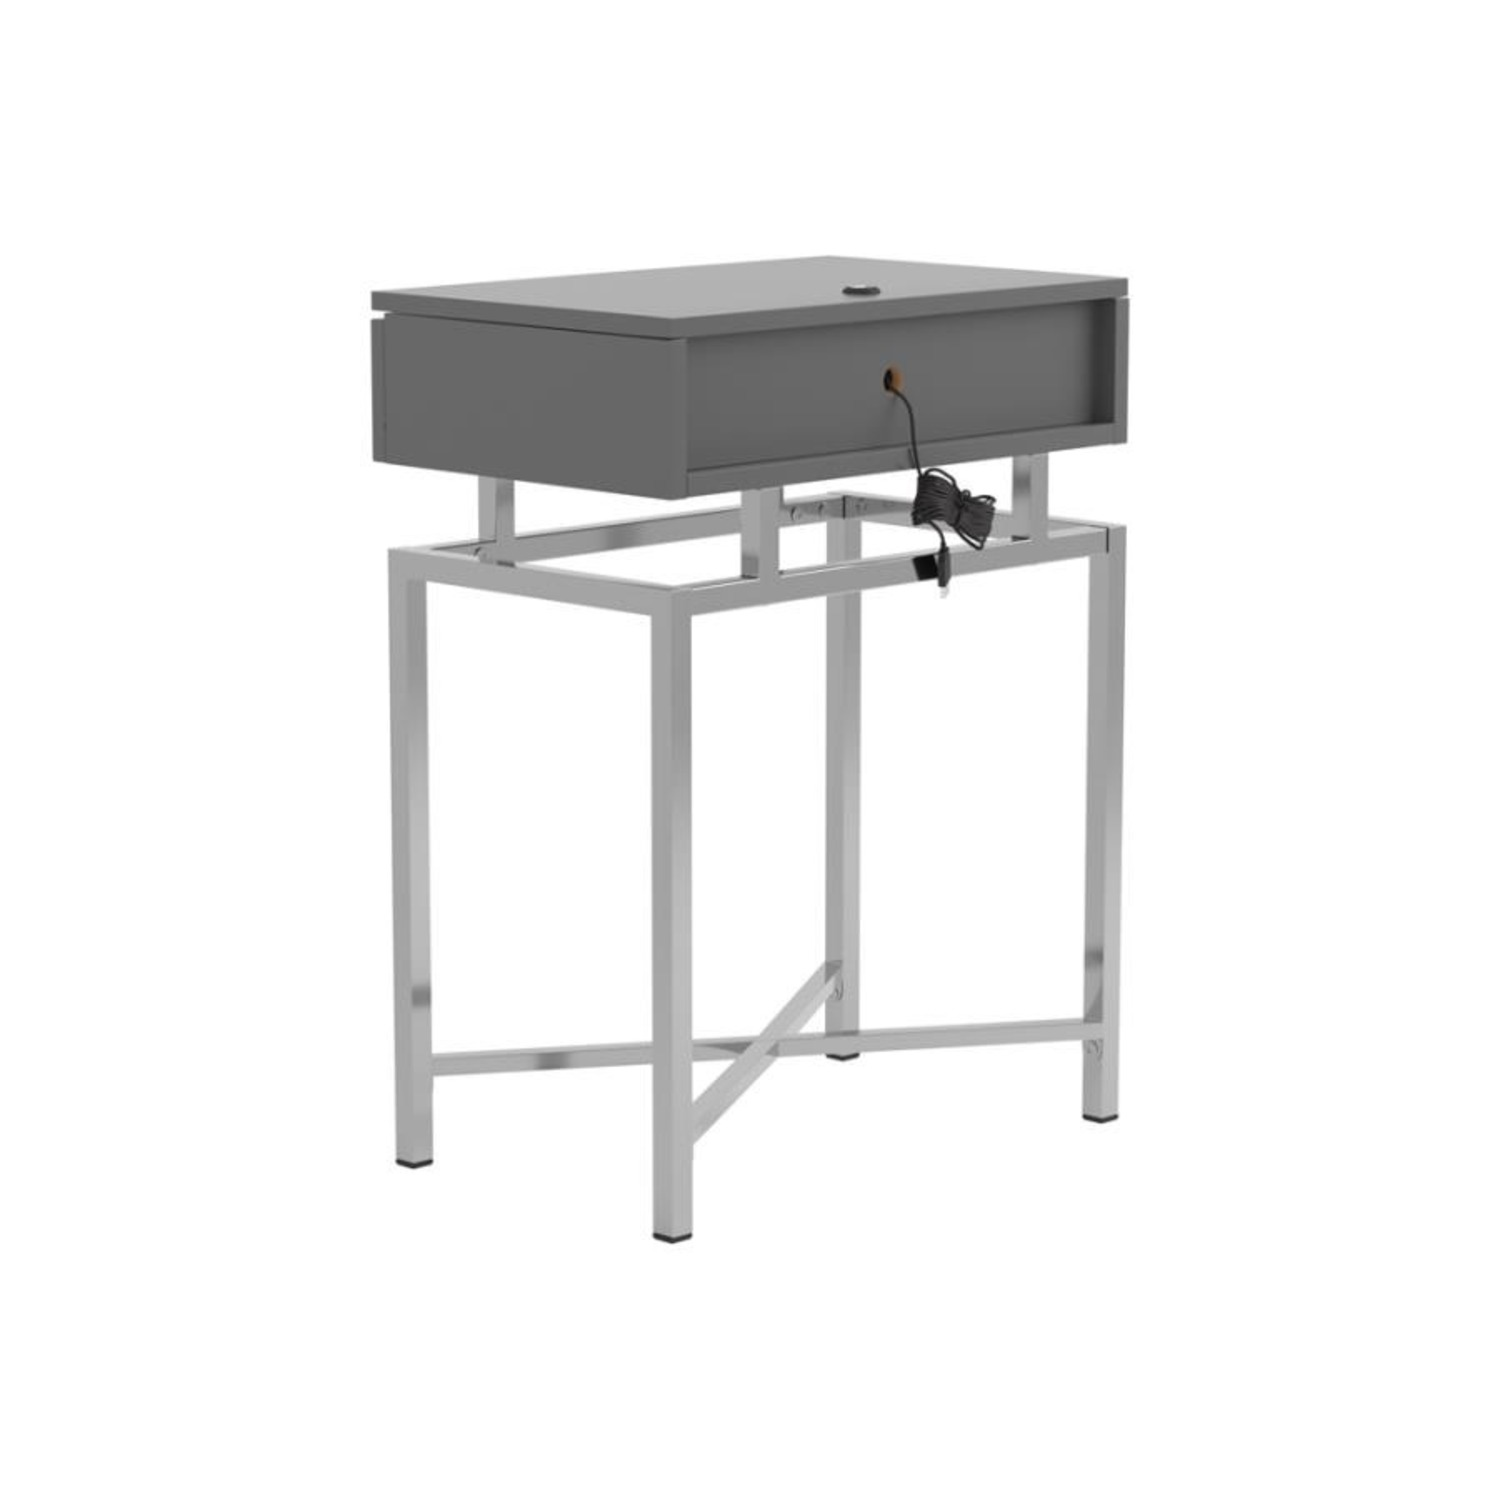 Accent Table In Grey High Gloss Finish - image-5